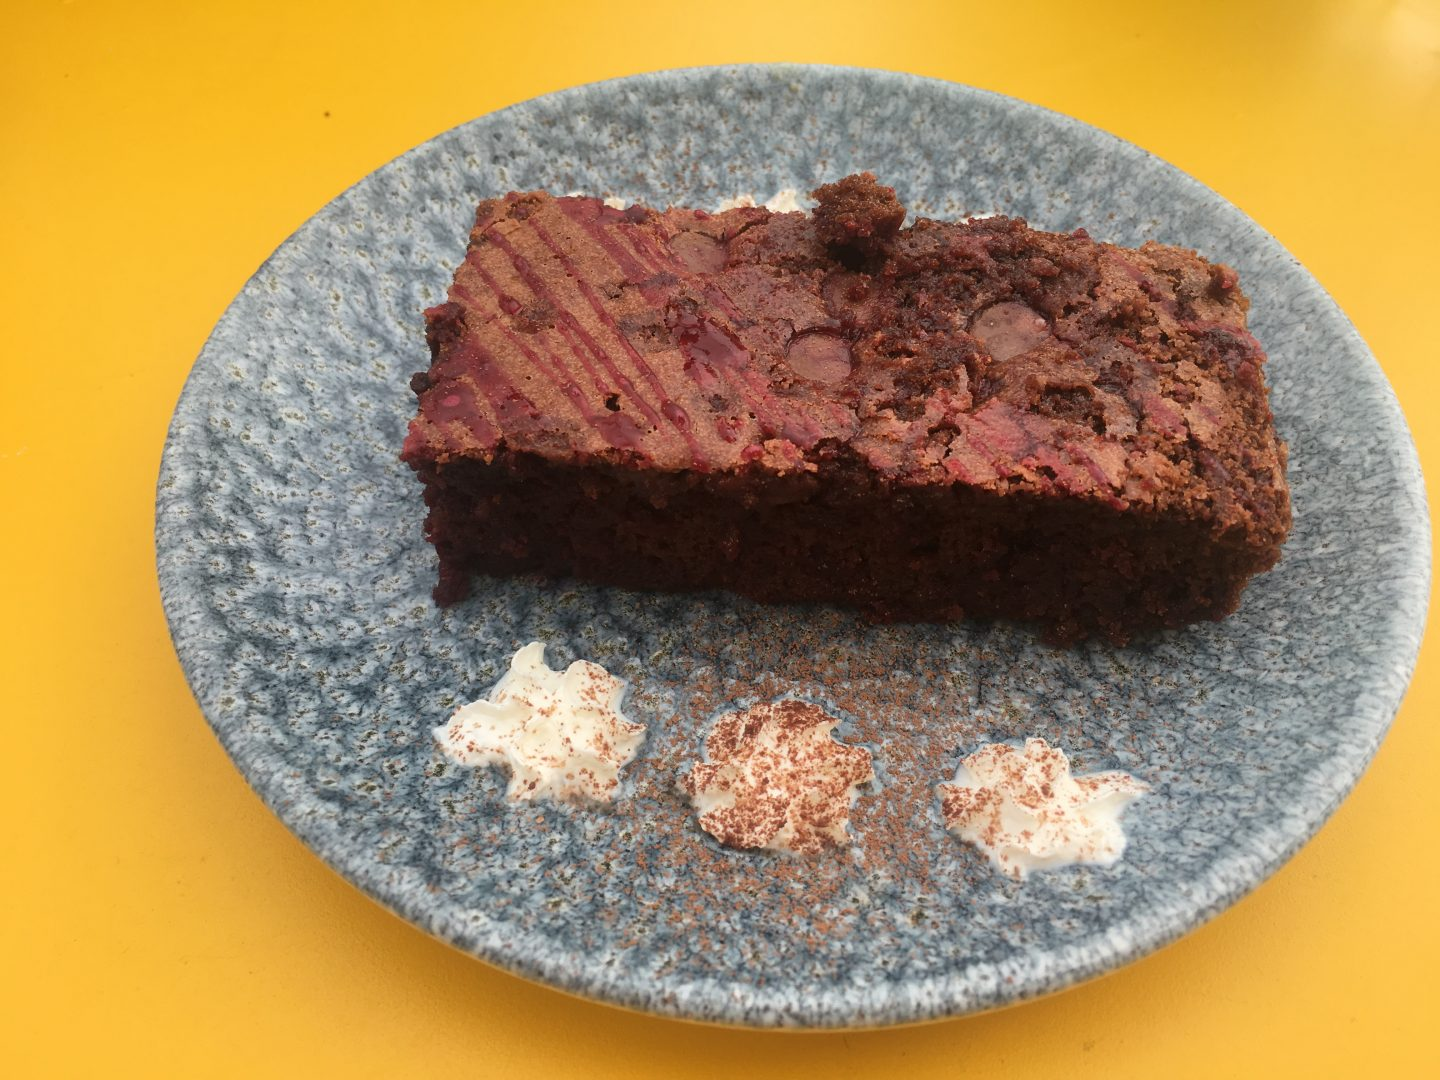 Beetroot brownie at Caffi Sio, Cardiff Bay